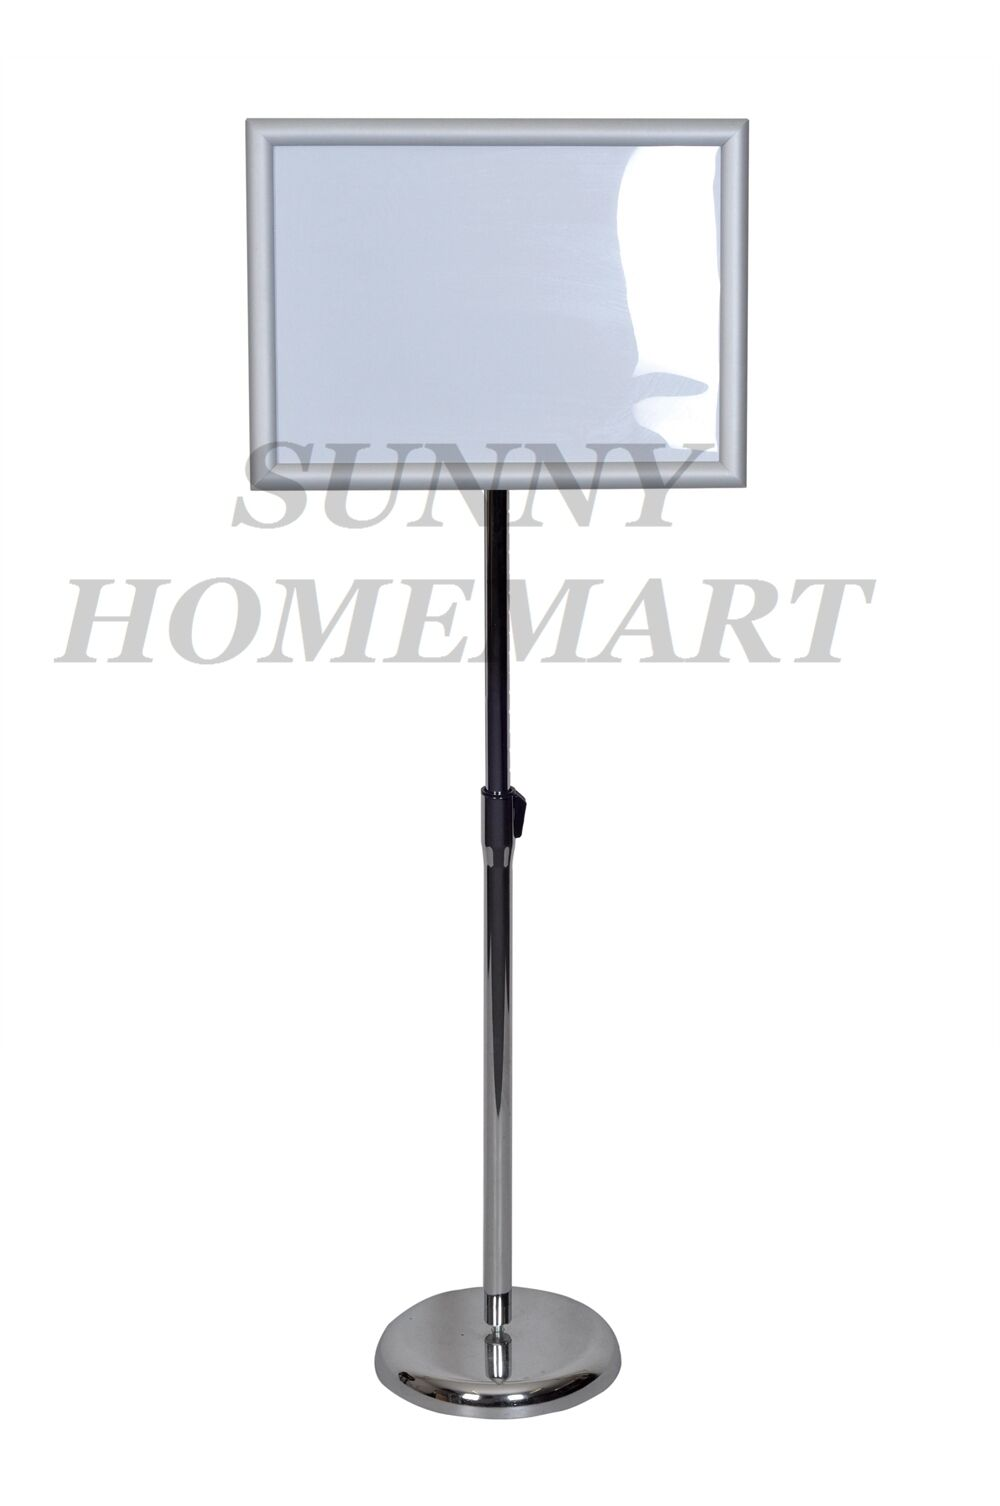 Exhibition Stand Height : New a poster stand metal frame pedestal sign holder